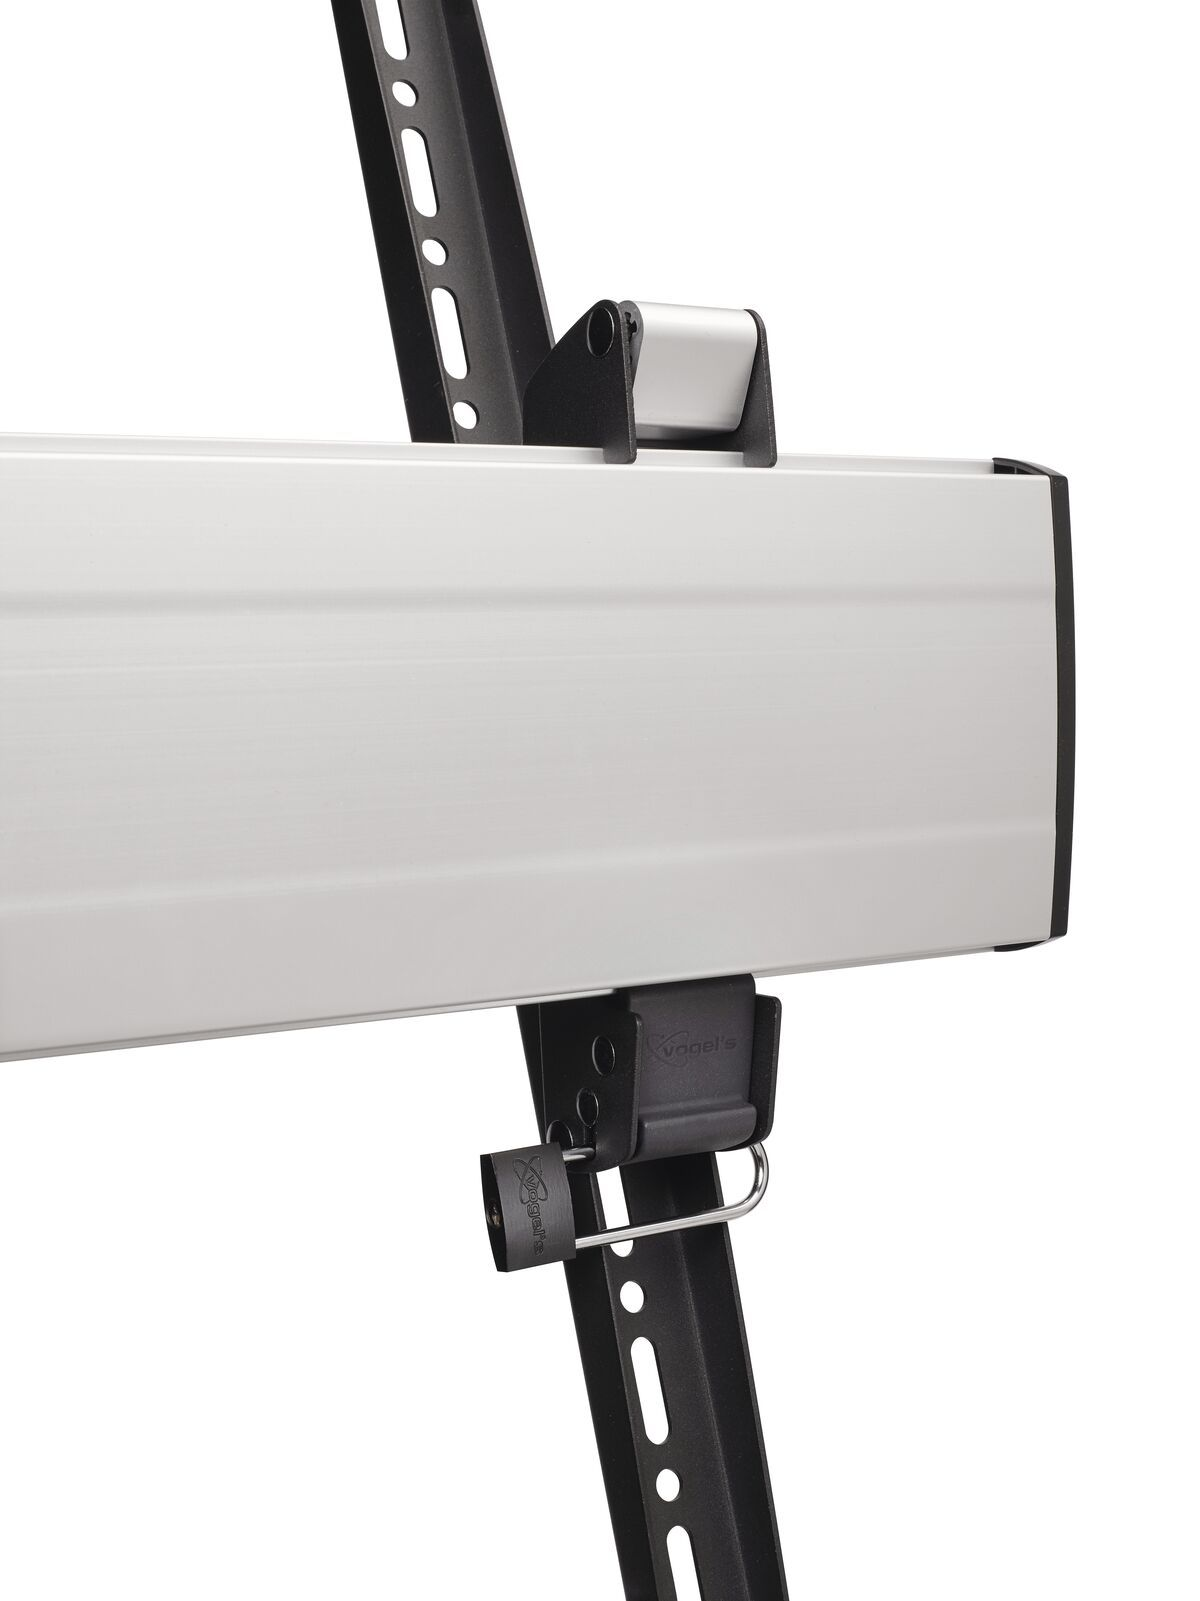 Vogel's PFA 9109 Hangslot voor display strips - Application